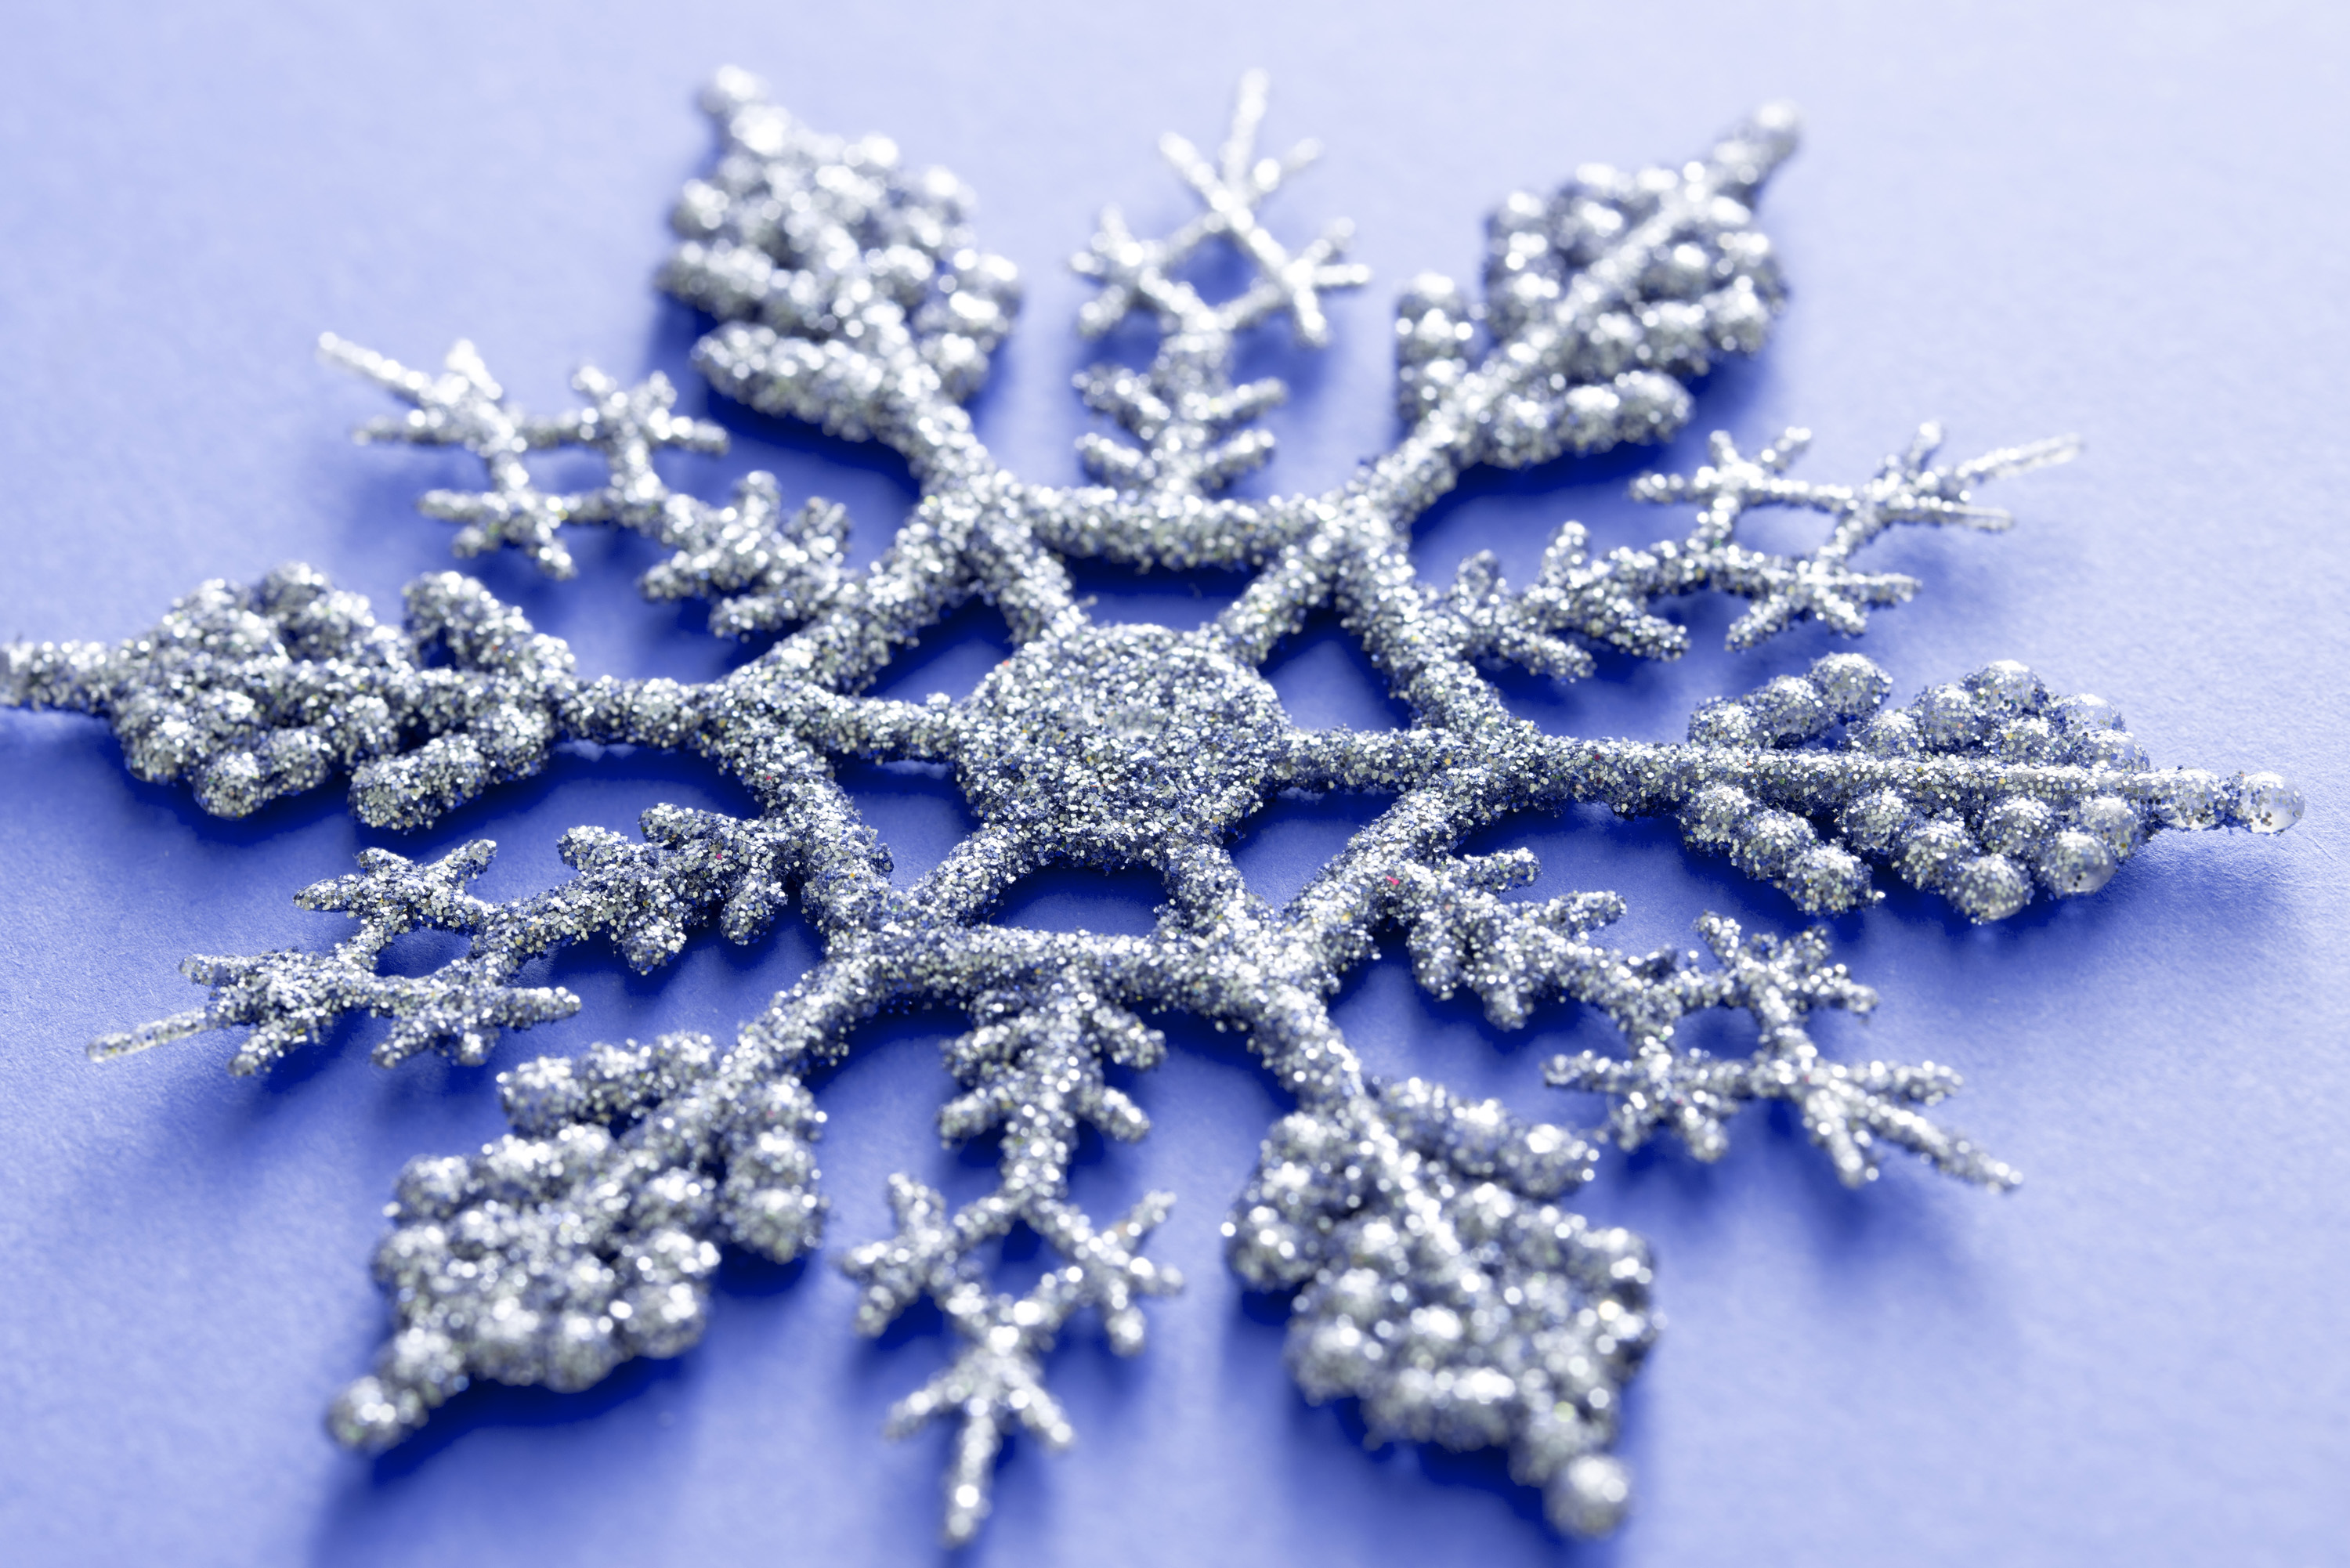 Ornamental silver glitter Xmas snowflake on a blue background viewed close up for a festive Christmas background